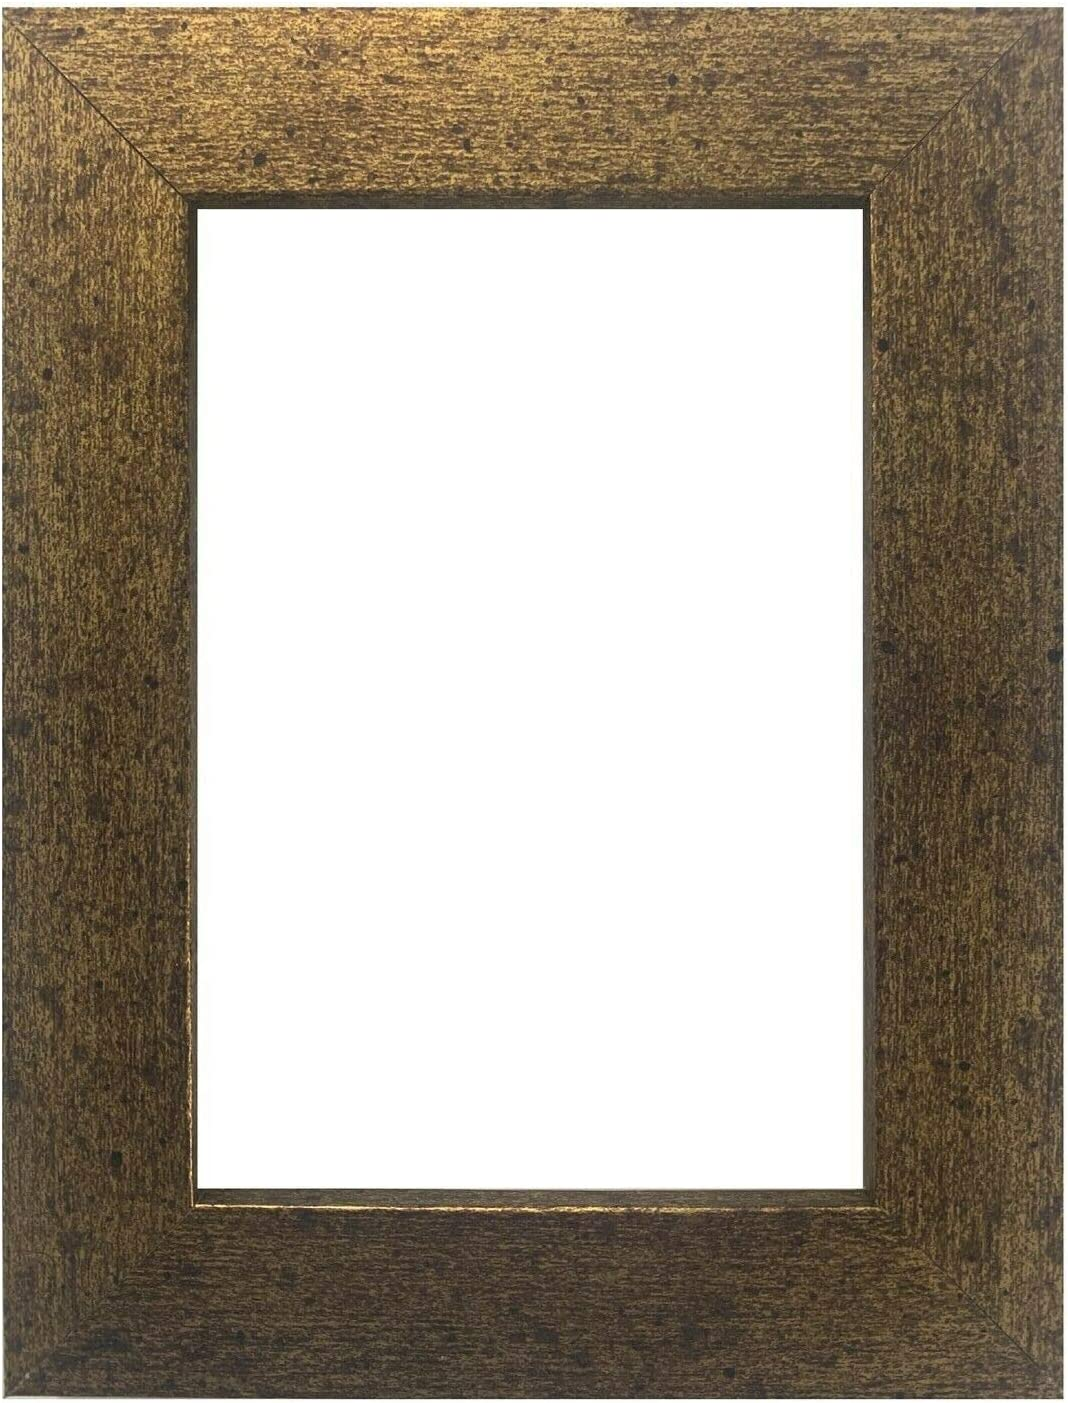 US Art Frames 15x21 Brushed Copper Smooth Flat メーカー直送 Inch Wrappe 1.25 数量限定アウトレット最安価格